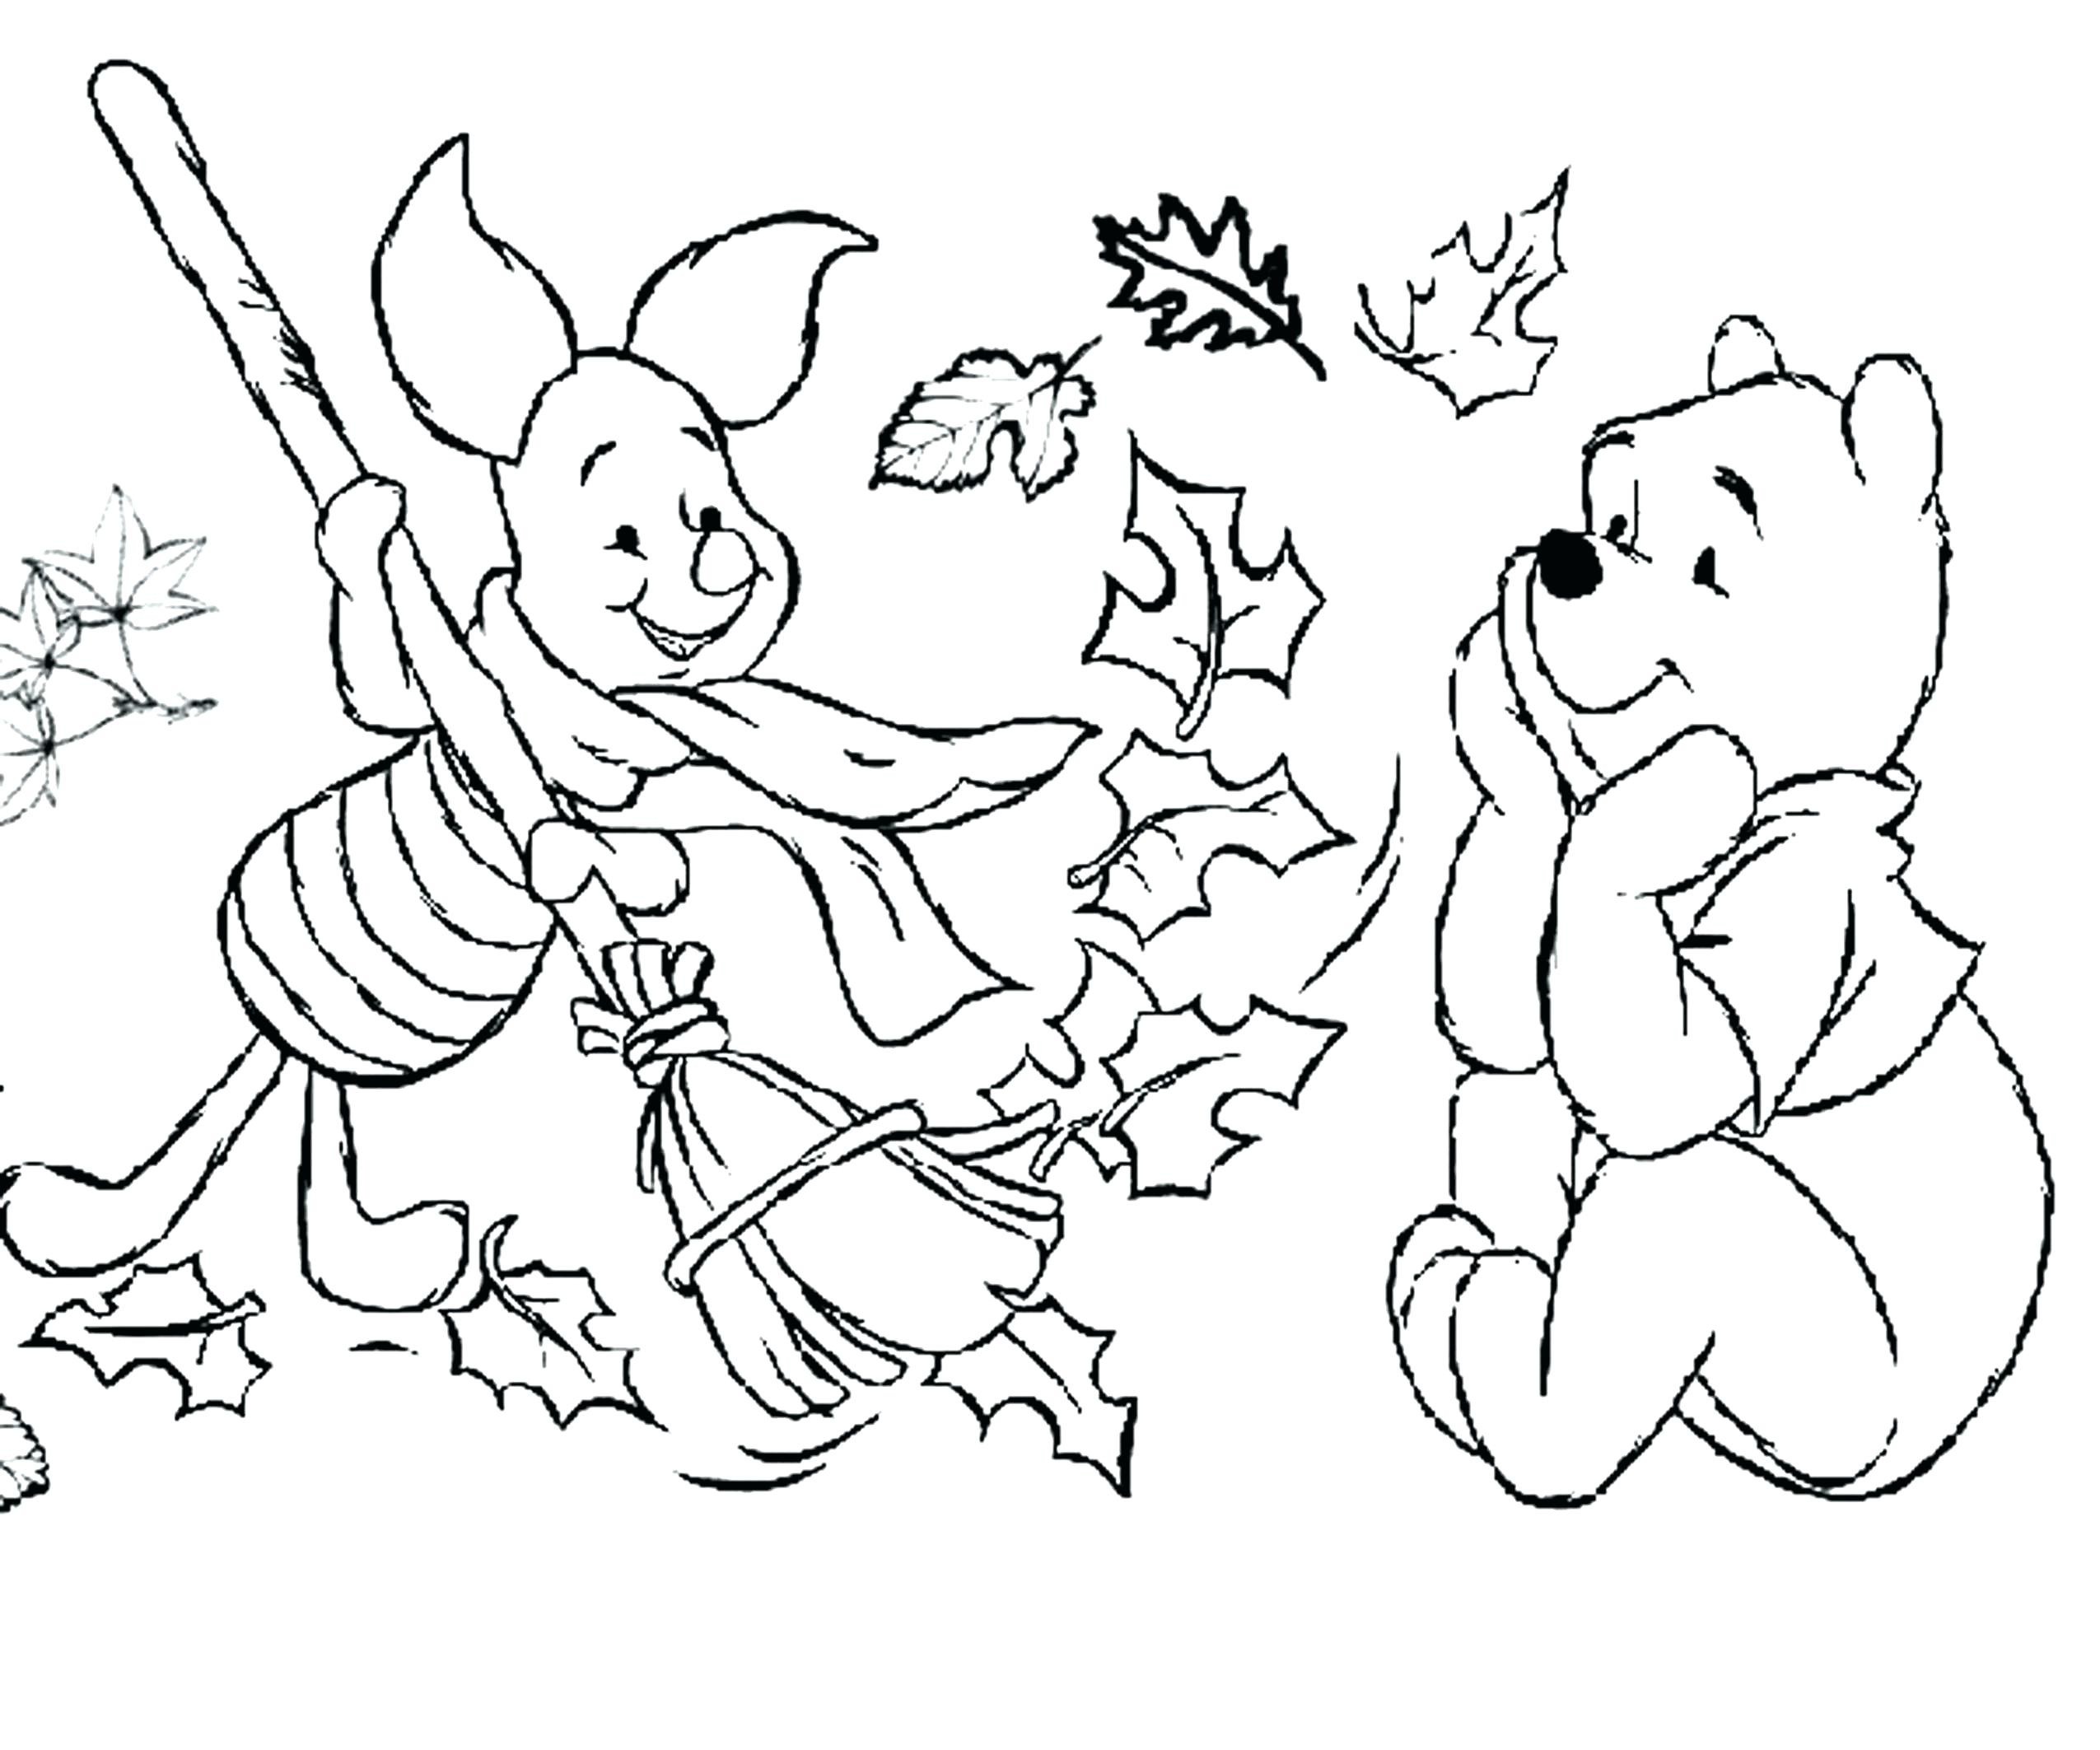 Fall Coloring Pages To Print Fall Coloring Pages Printable Coloring - Free Fall Printable Coloring Sheets